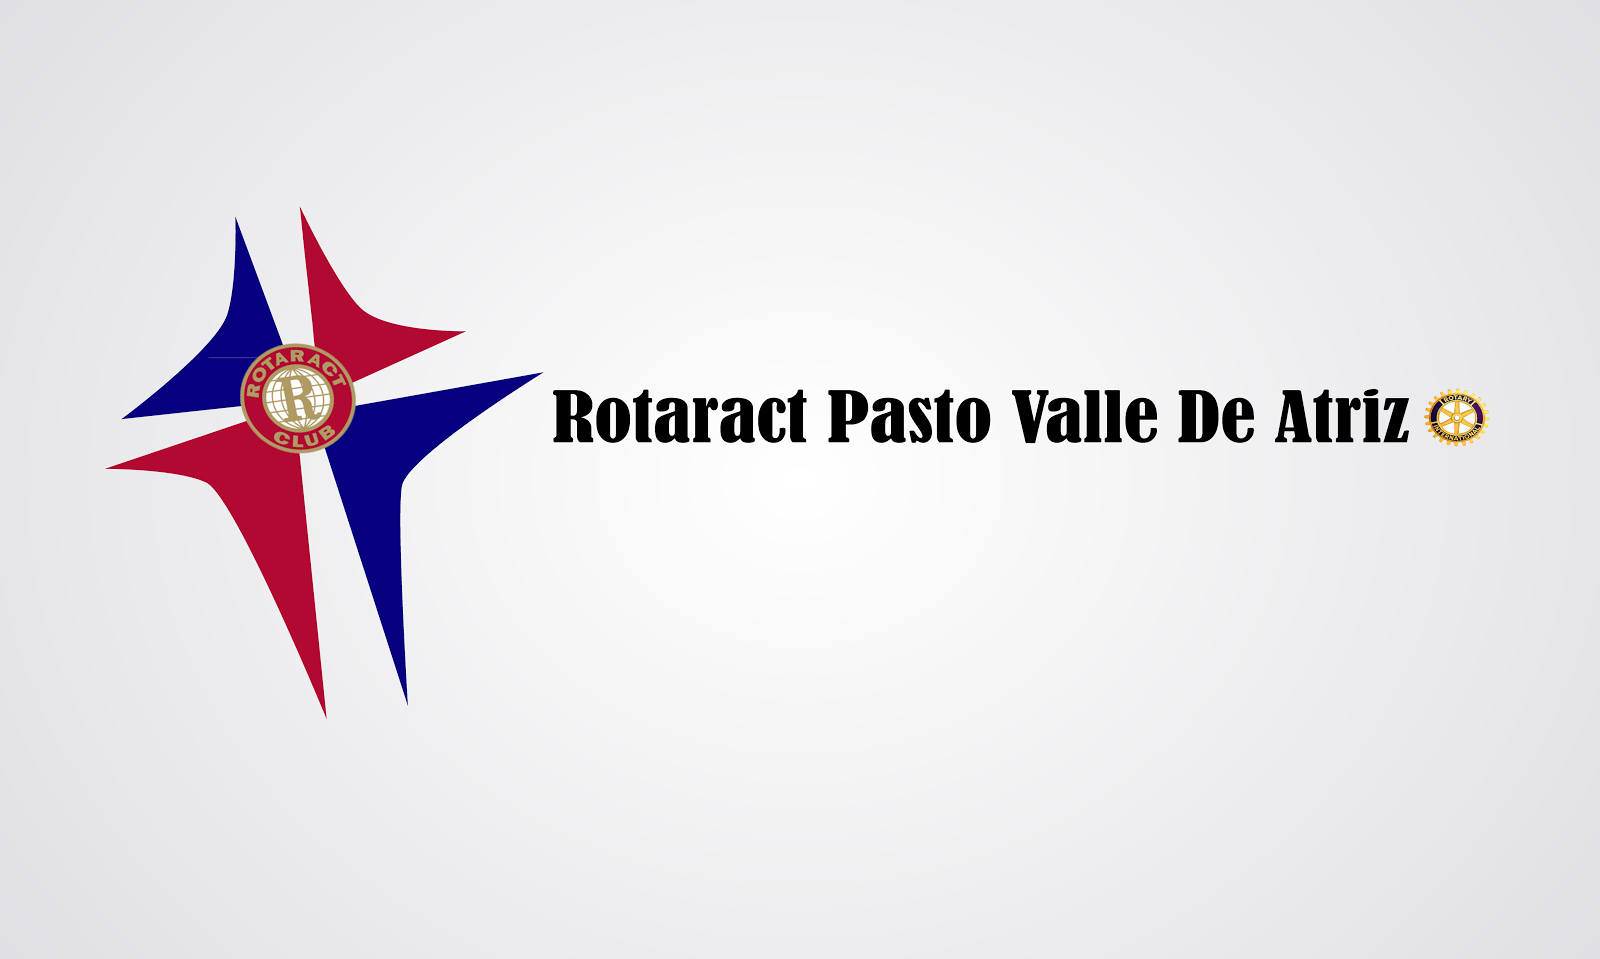 Club Rotaract Pasto Valle de Atriz